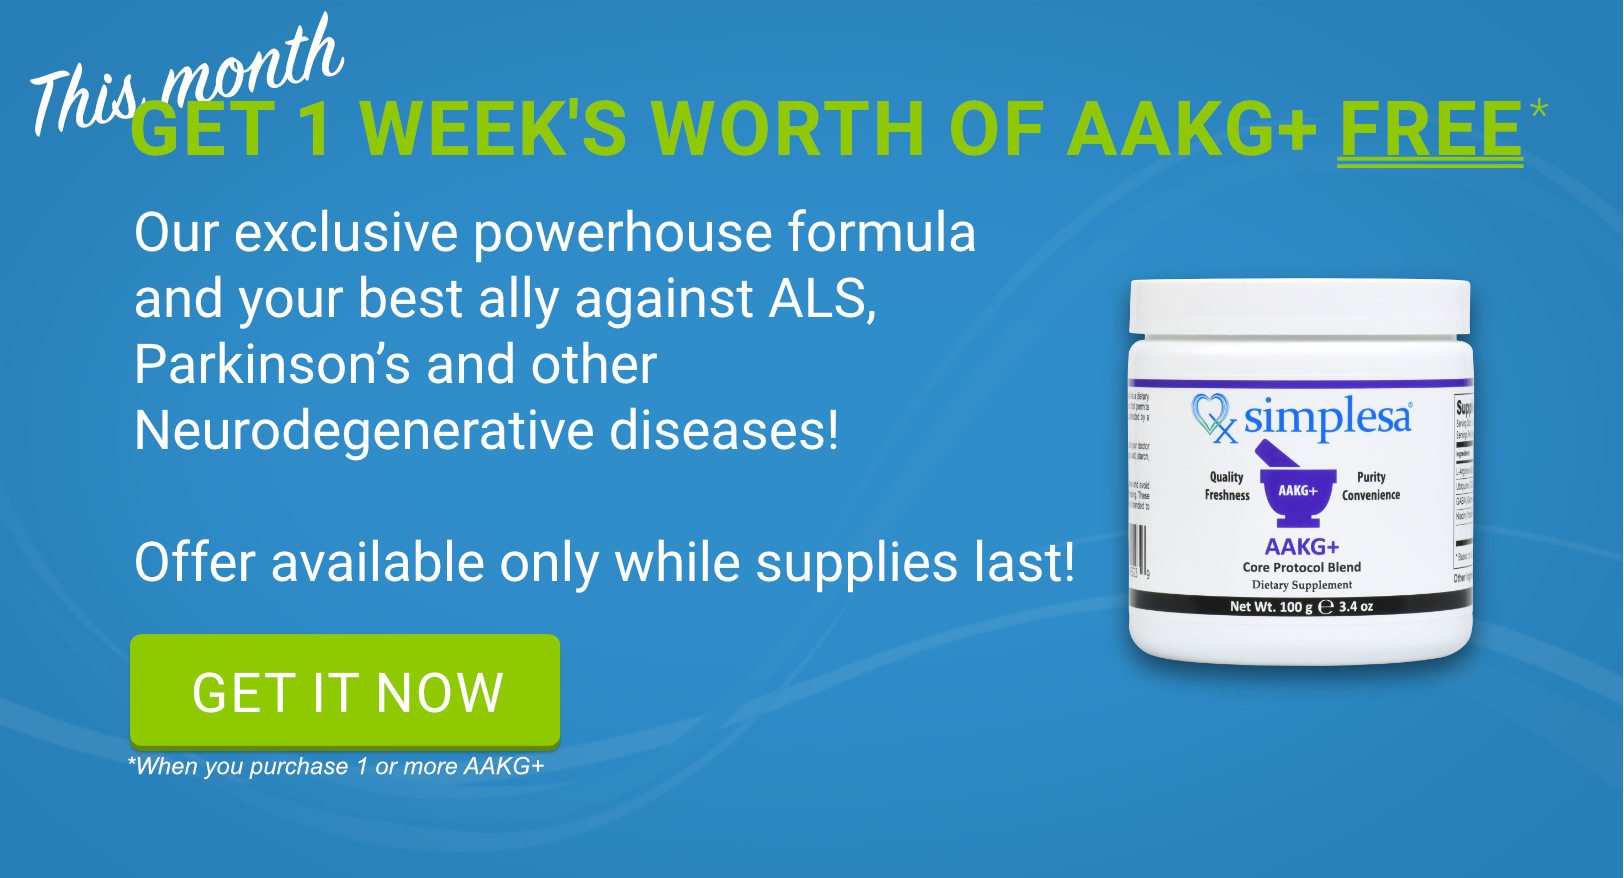 FREE AAKG+ Offer